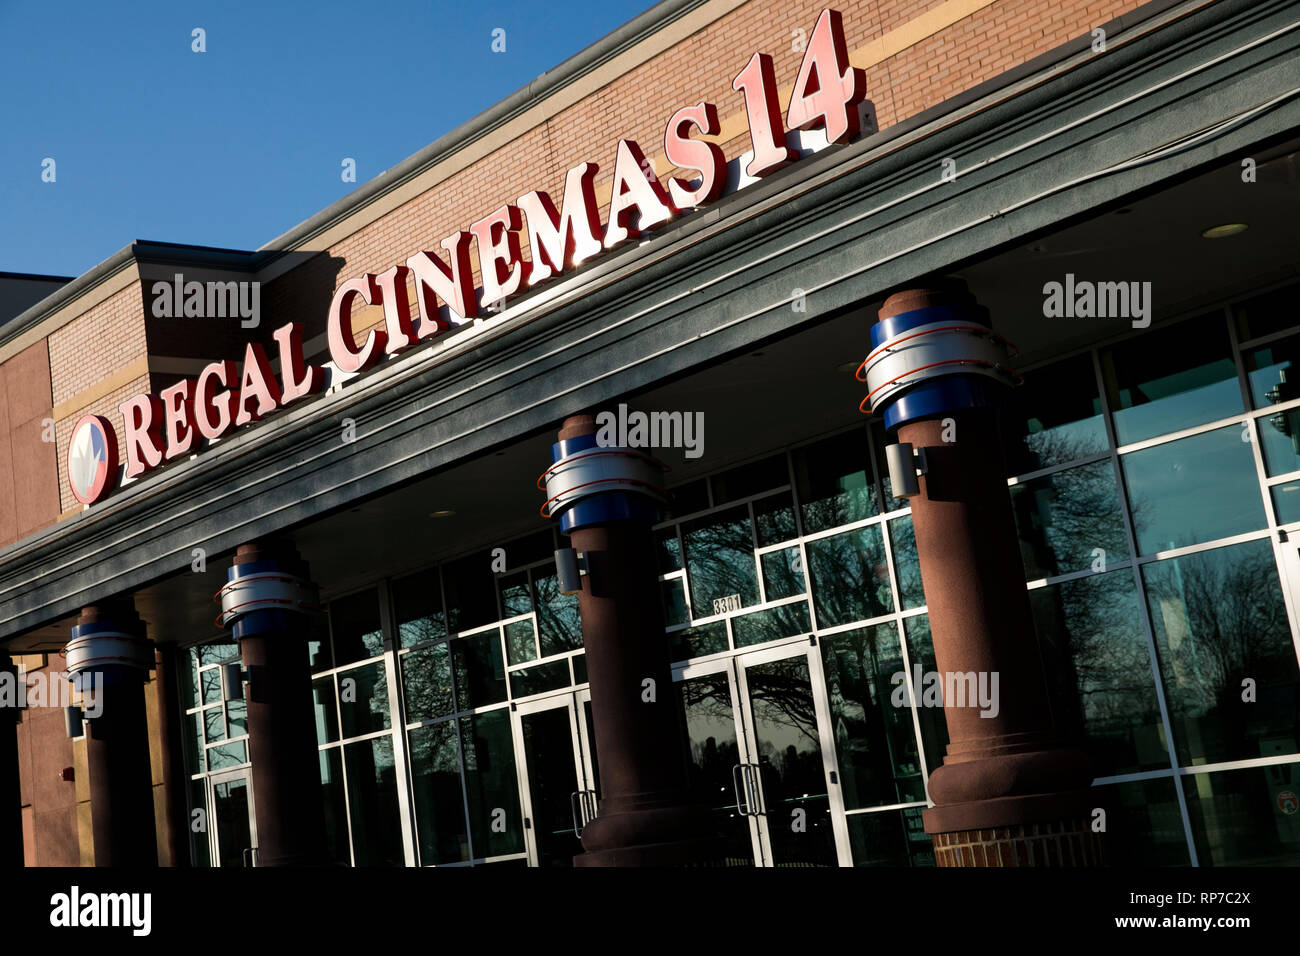 A logo sign outside of a Regal Cinemas movie theater location in Fredericksburg, Virginia on February 19, 2019. - Stock Image